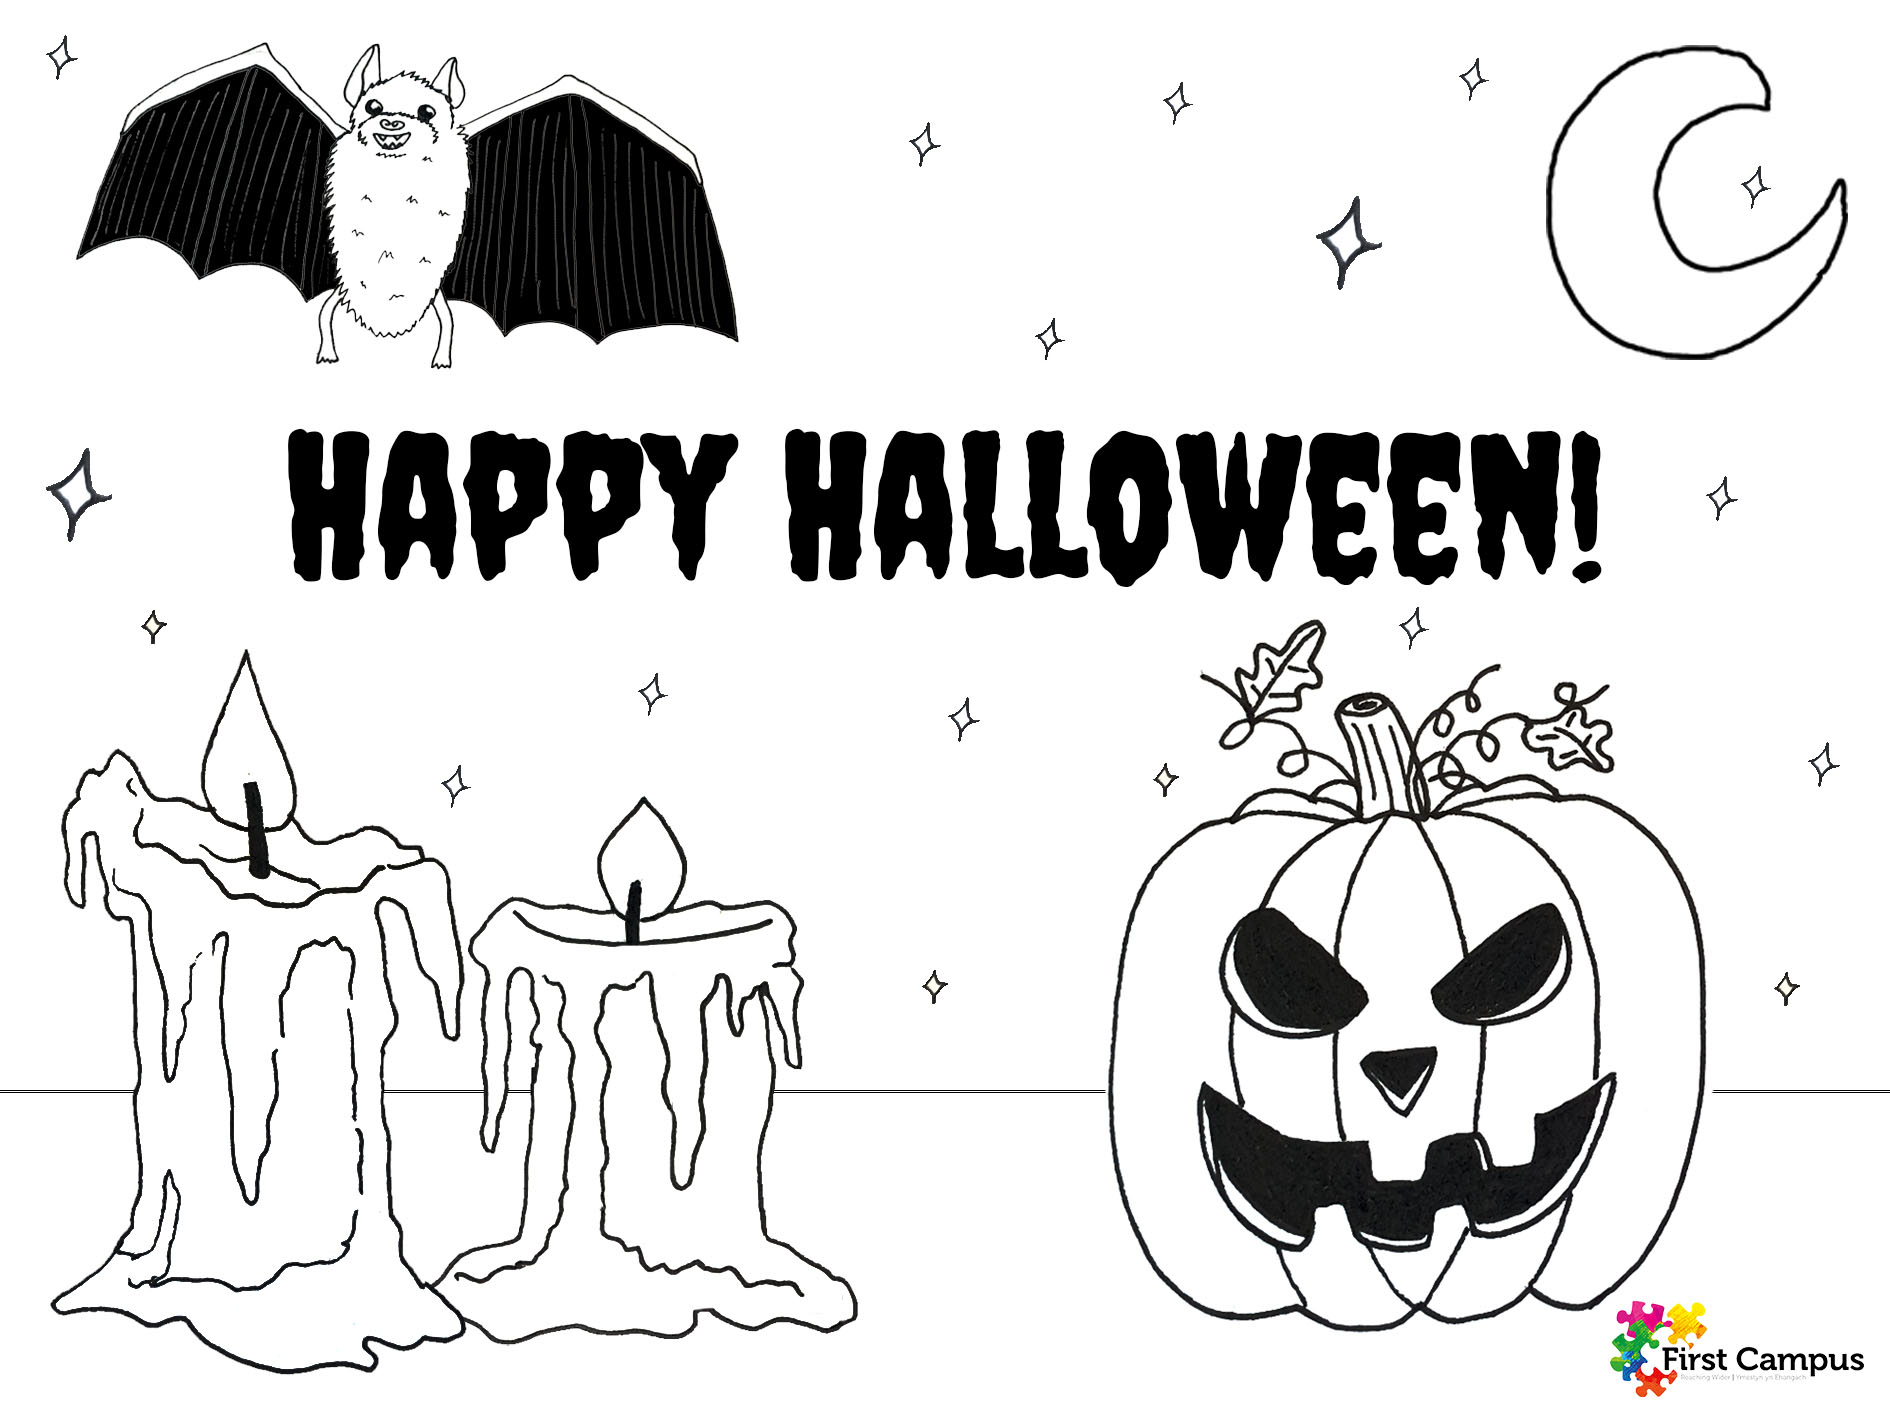 First Campus Half Term Halloween Colouring Challenge